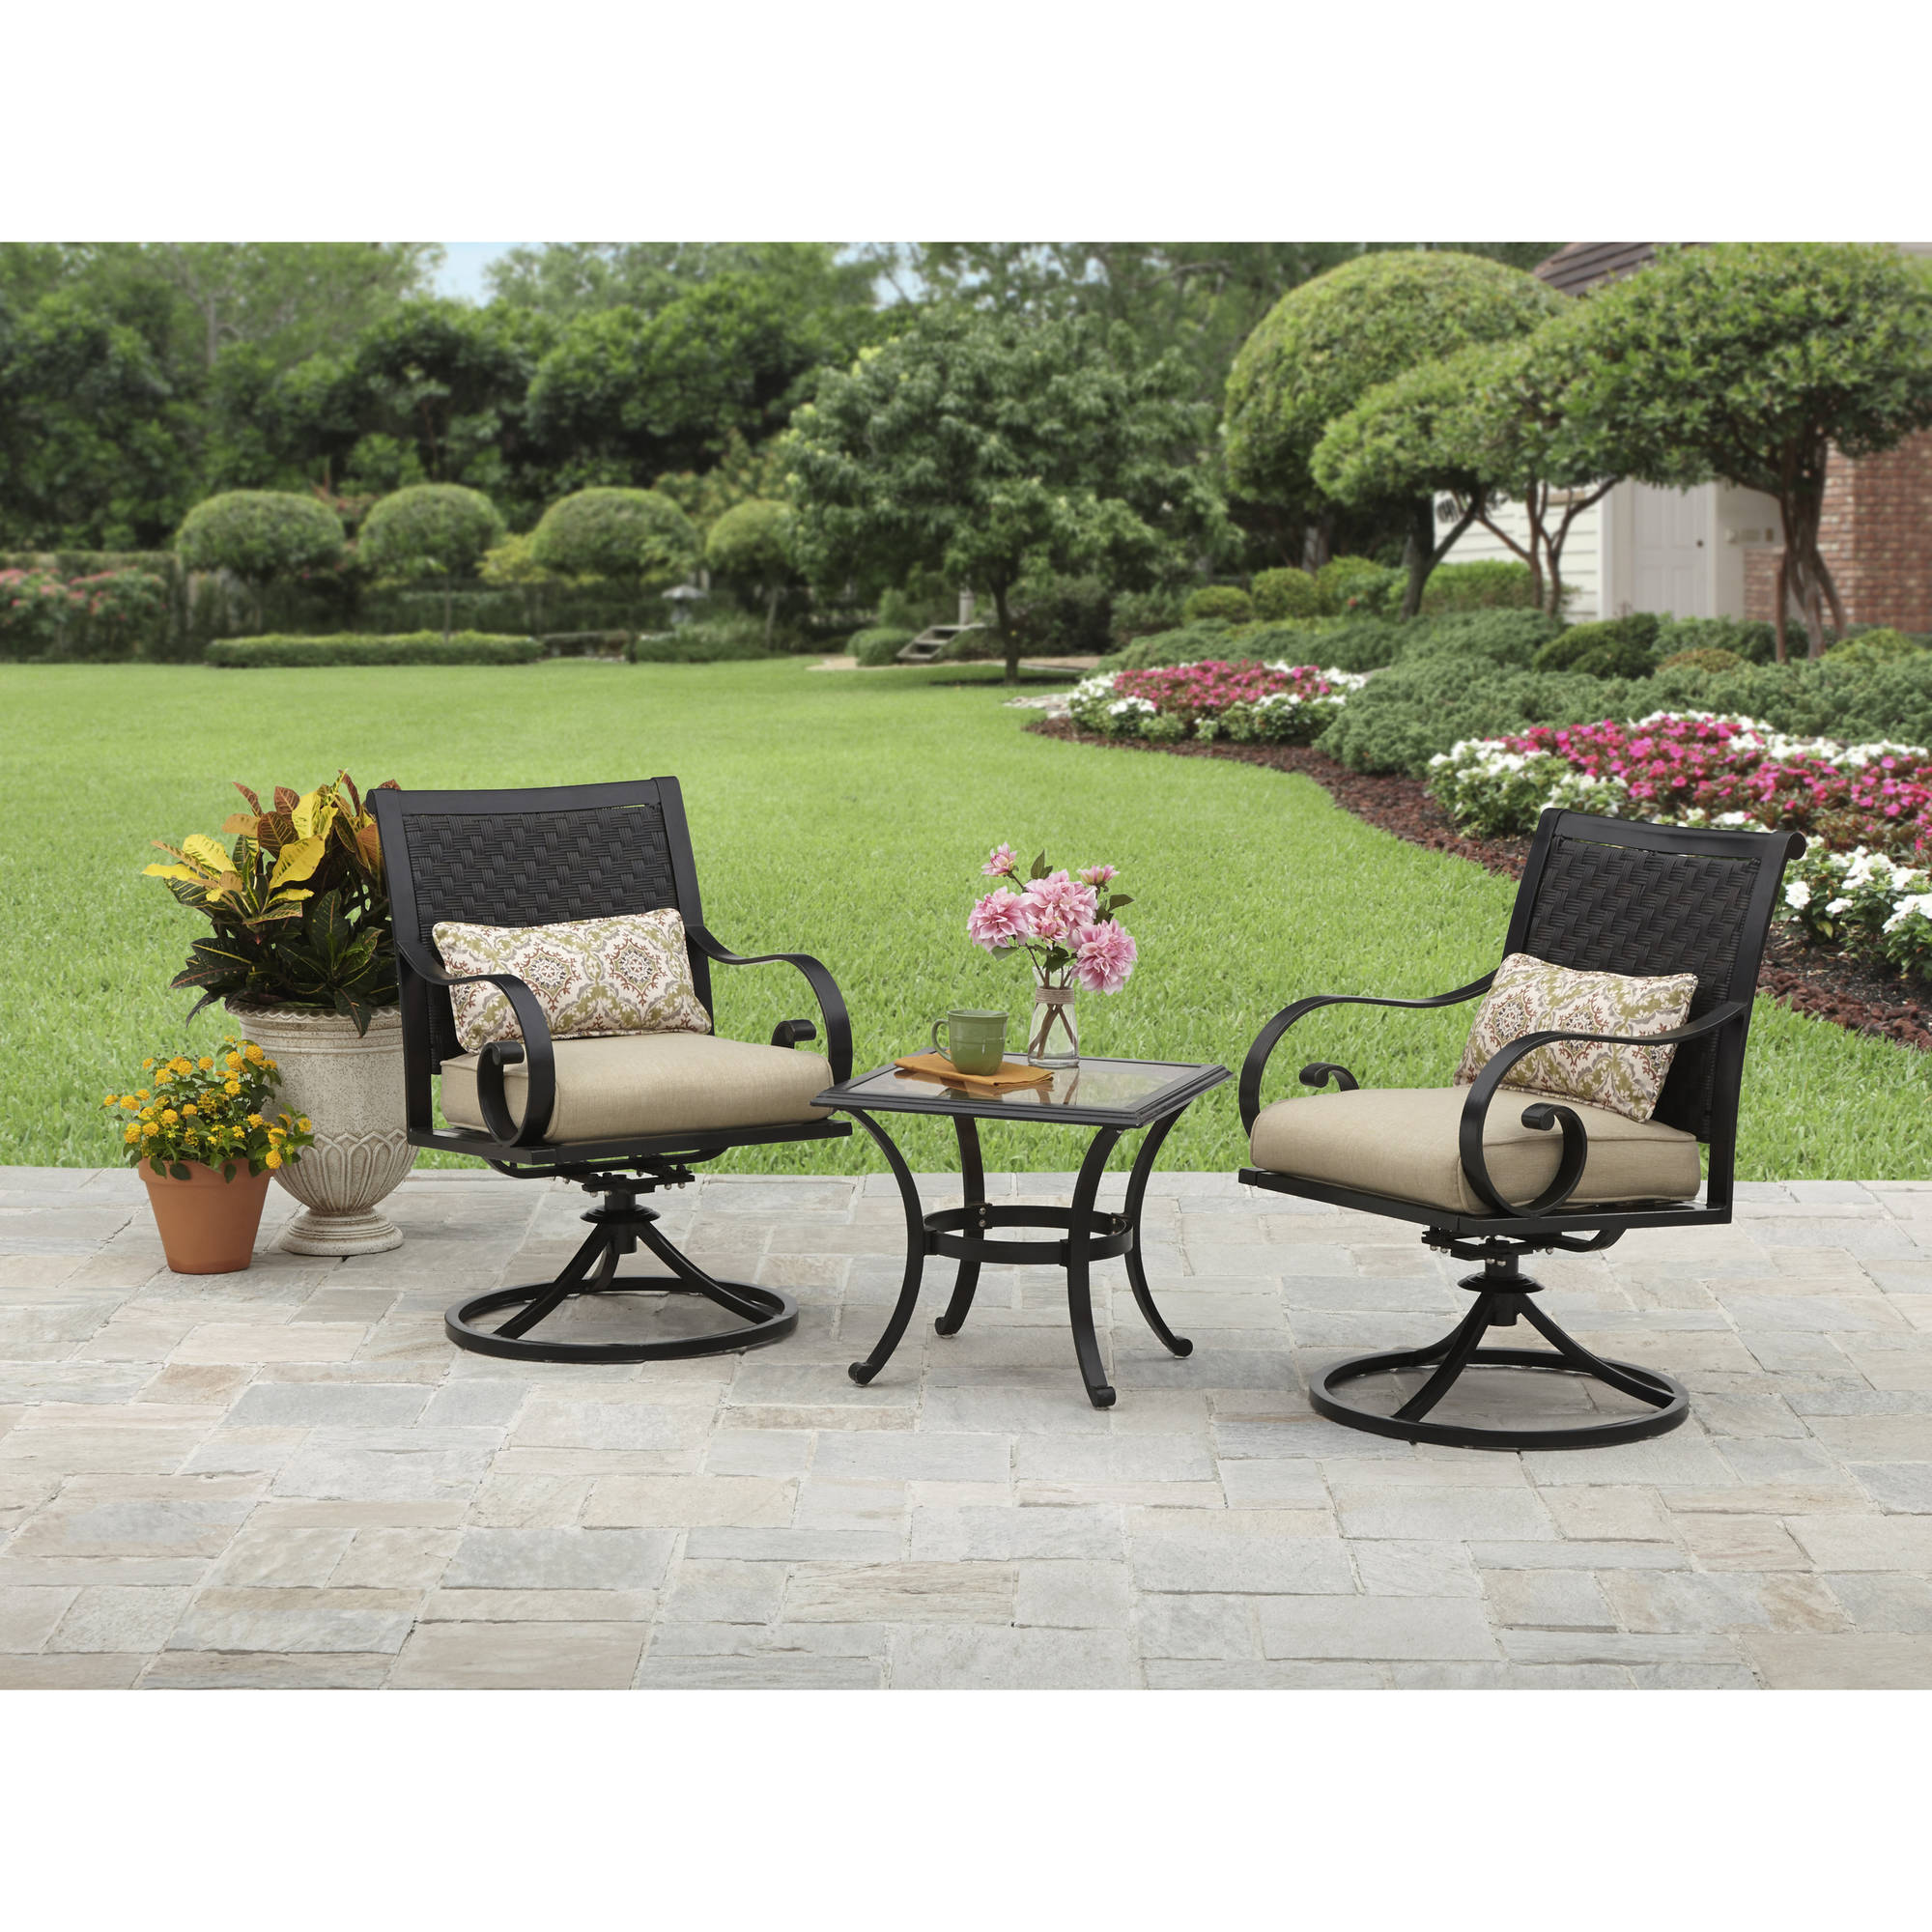 Outdoor Bistro Set Cast Aluminum Bistro Sets Patio Dining Furniture Patio With Finest Wicker